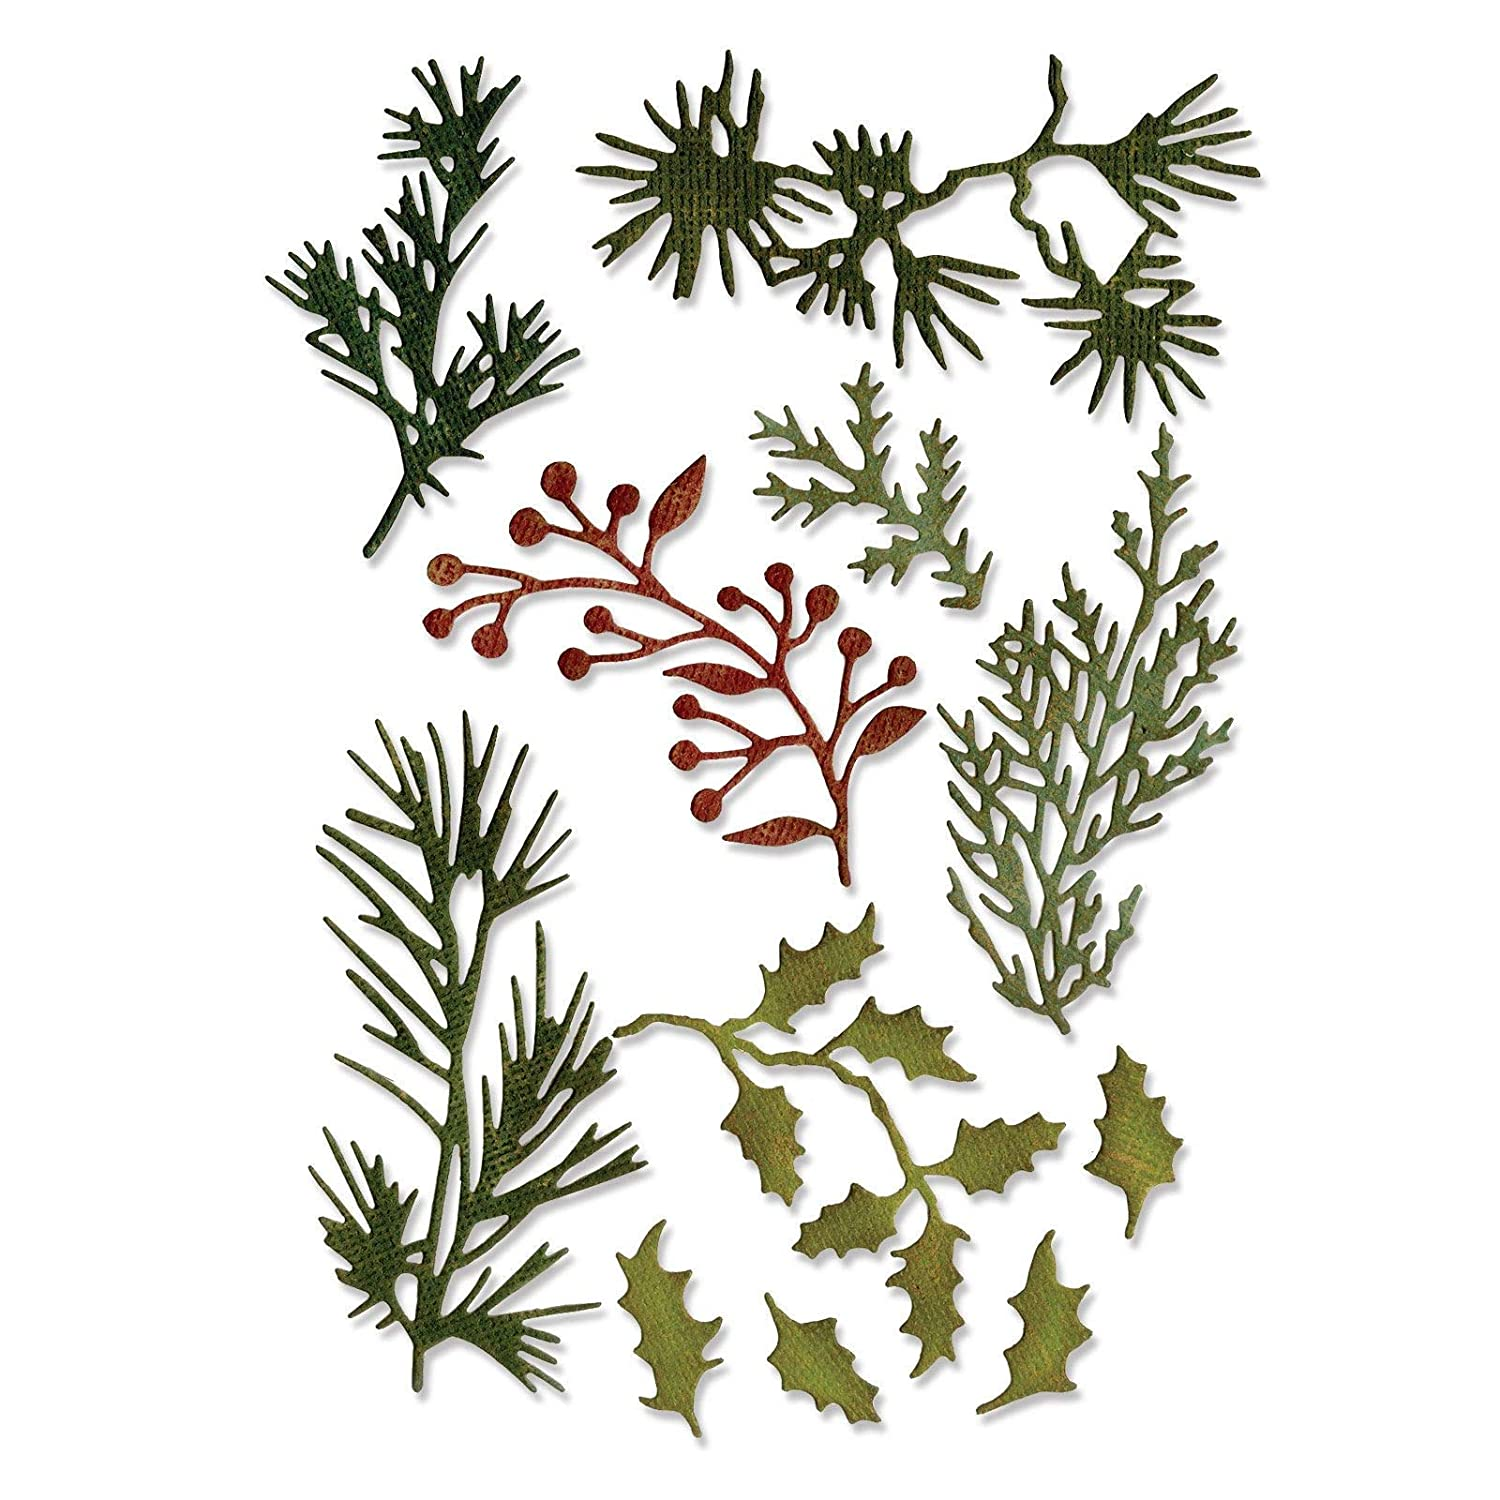 Mini by Tim Holtz 11-Pack Holiday Greens Sizzix 661597 Thinlits Die Set